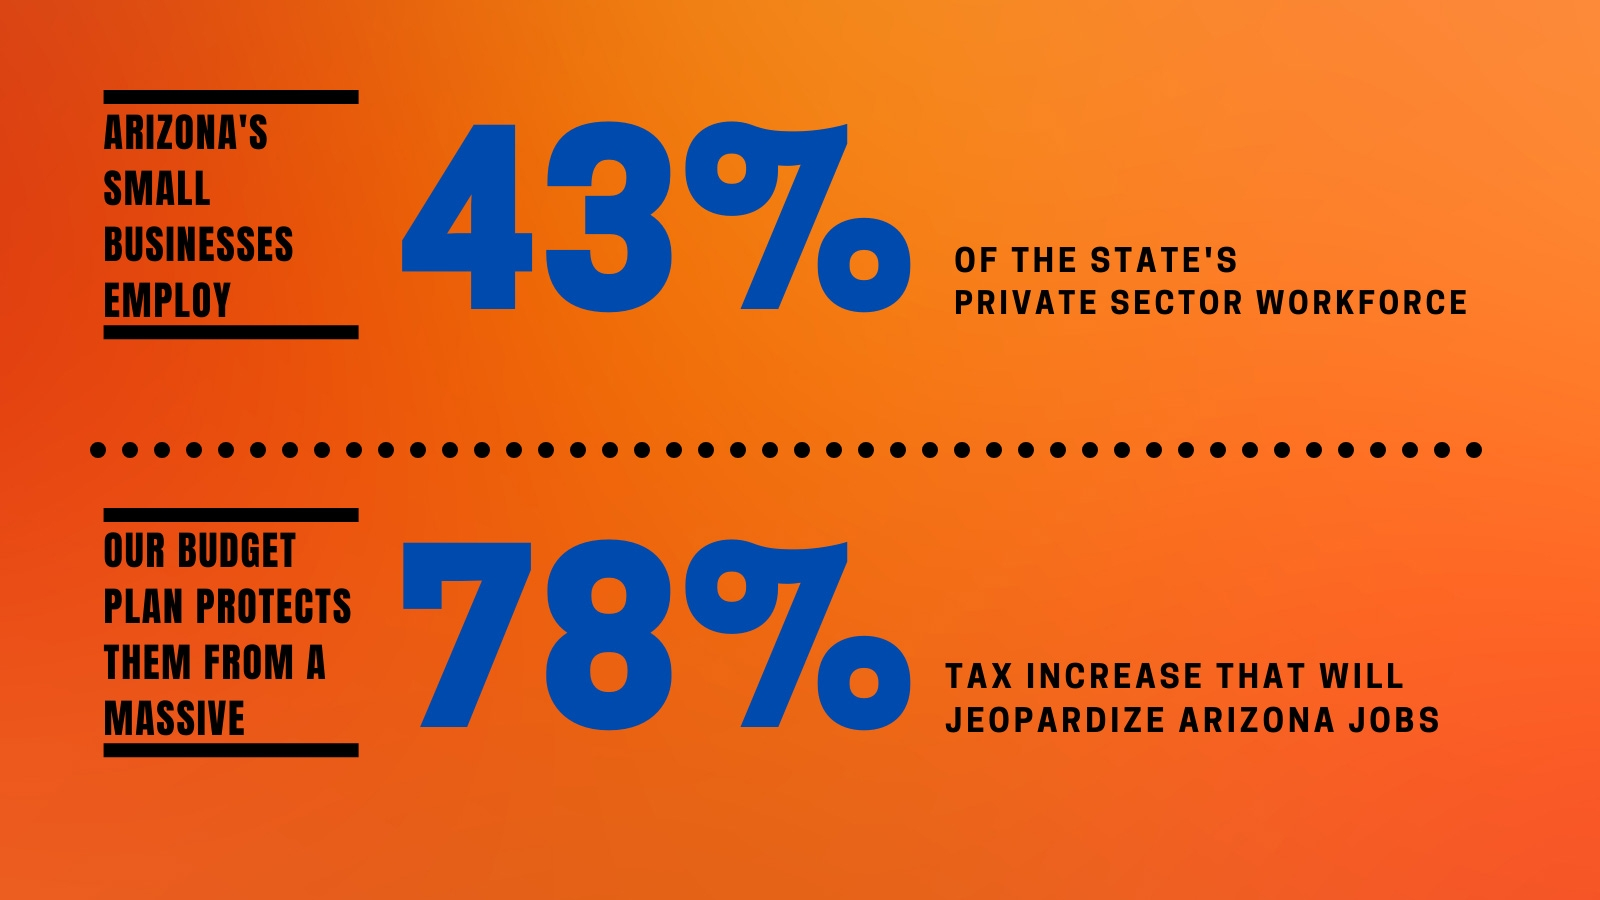 Protect business from tax increase